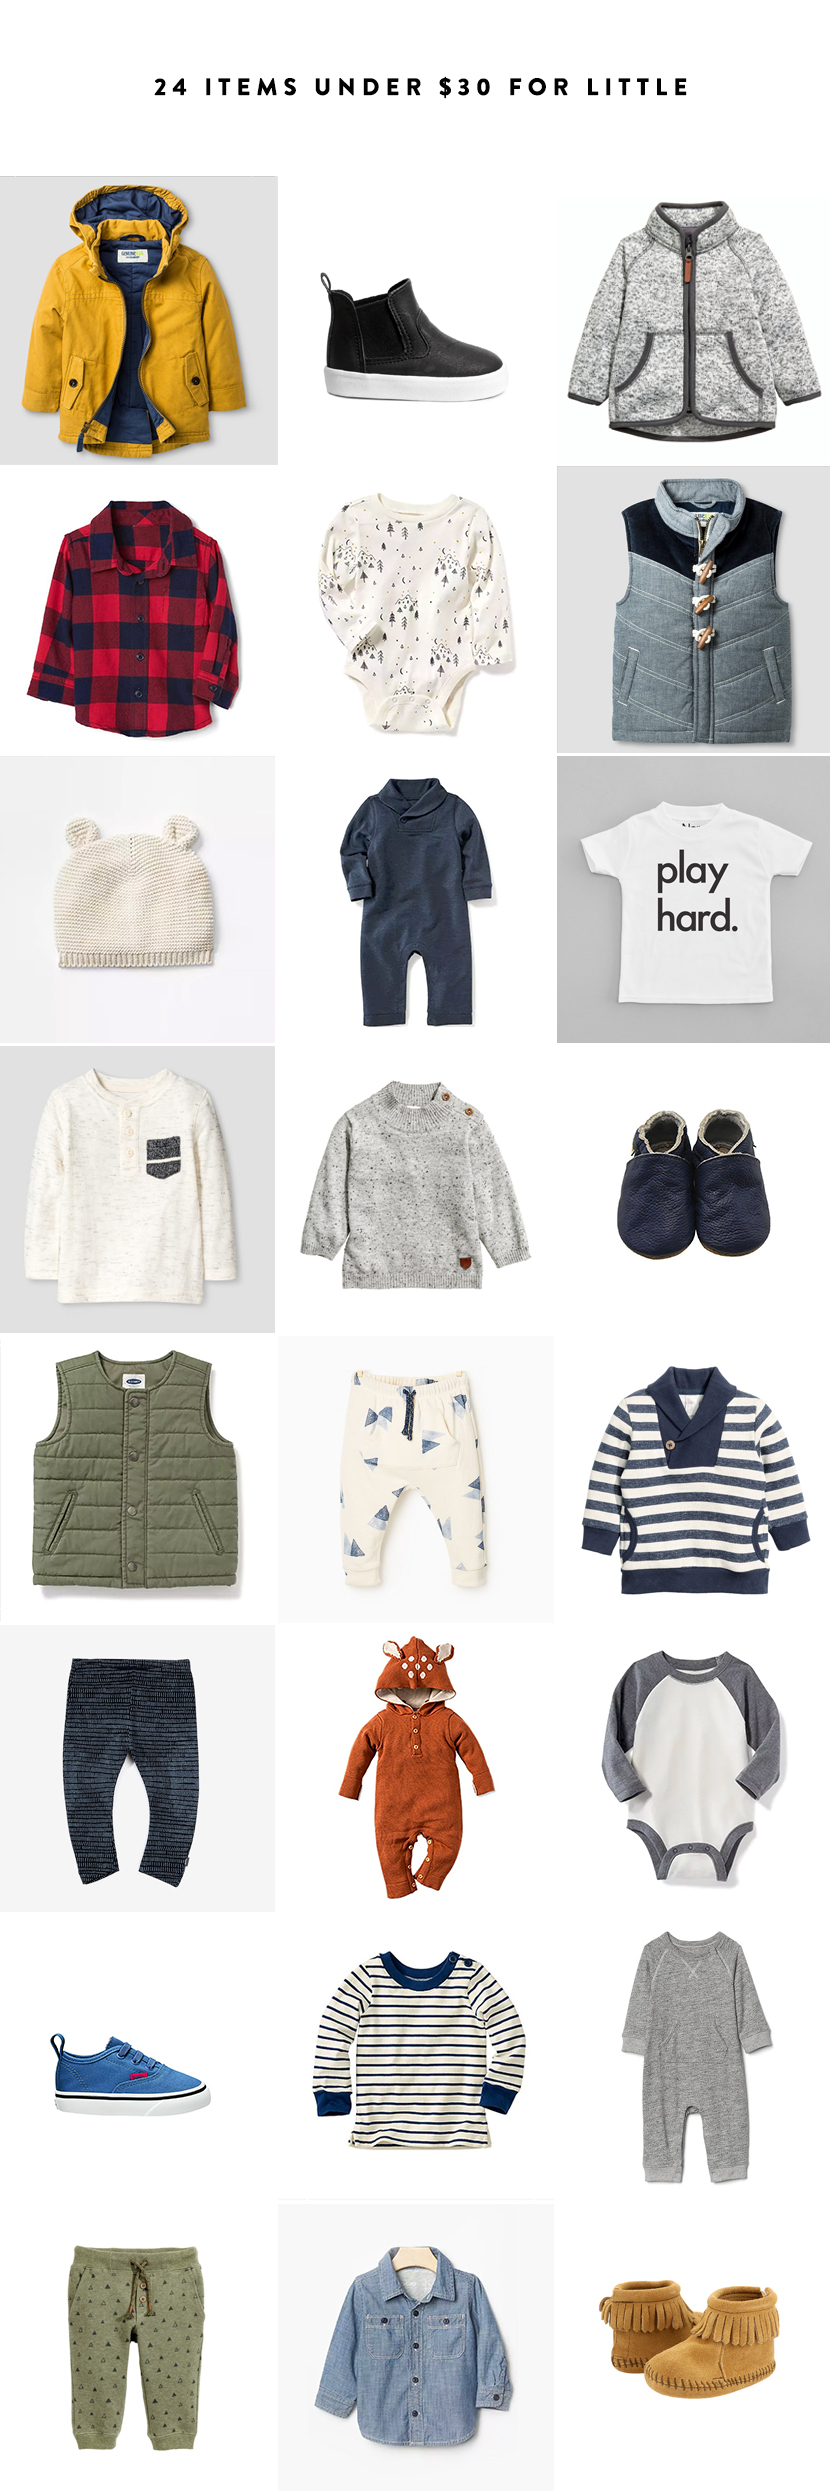 24 items under 30 for little one clothes great deals on